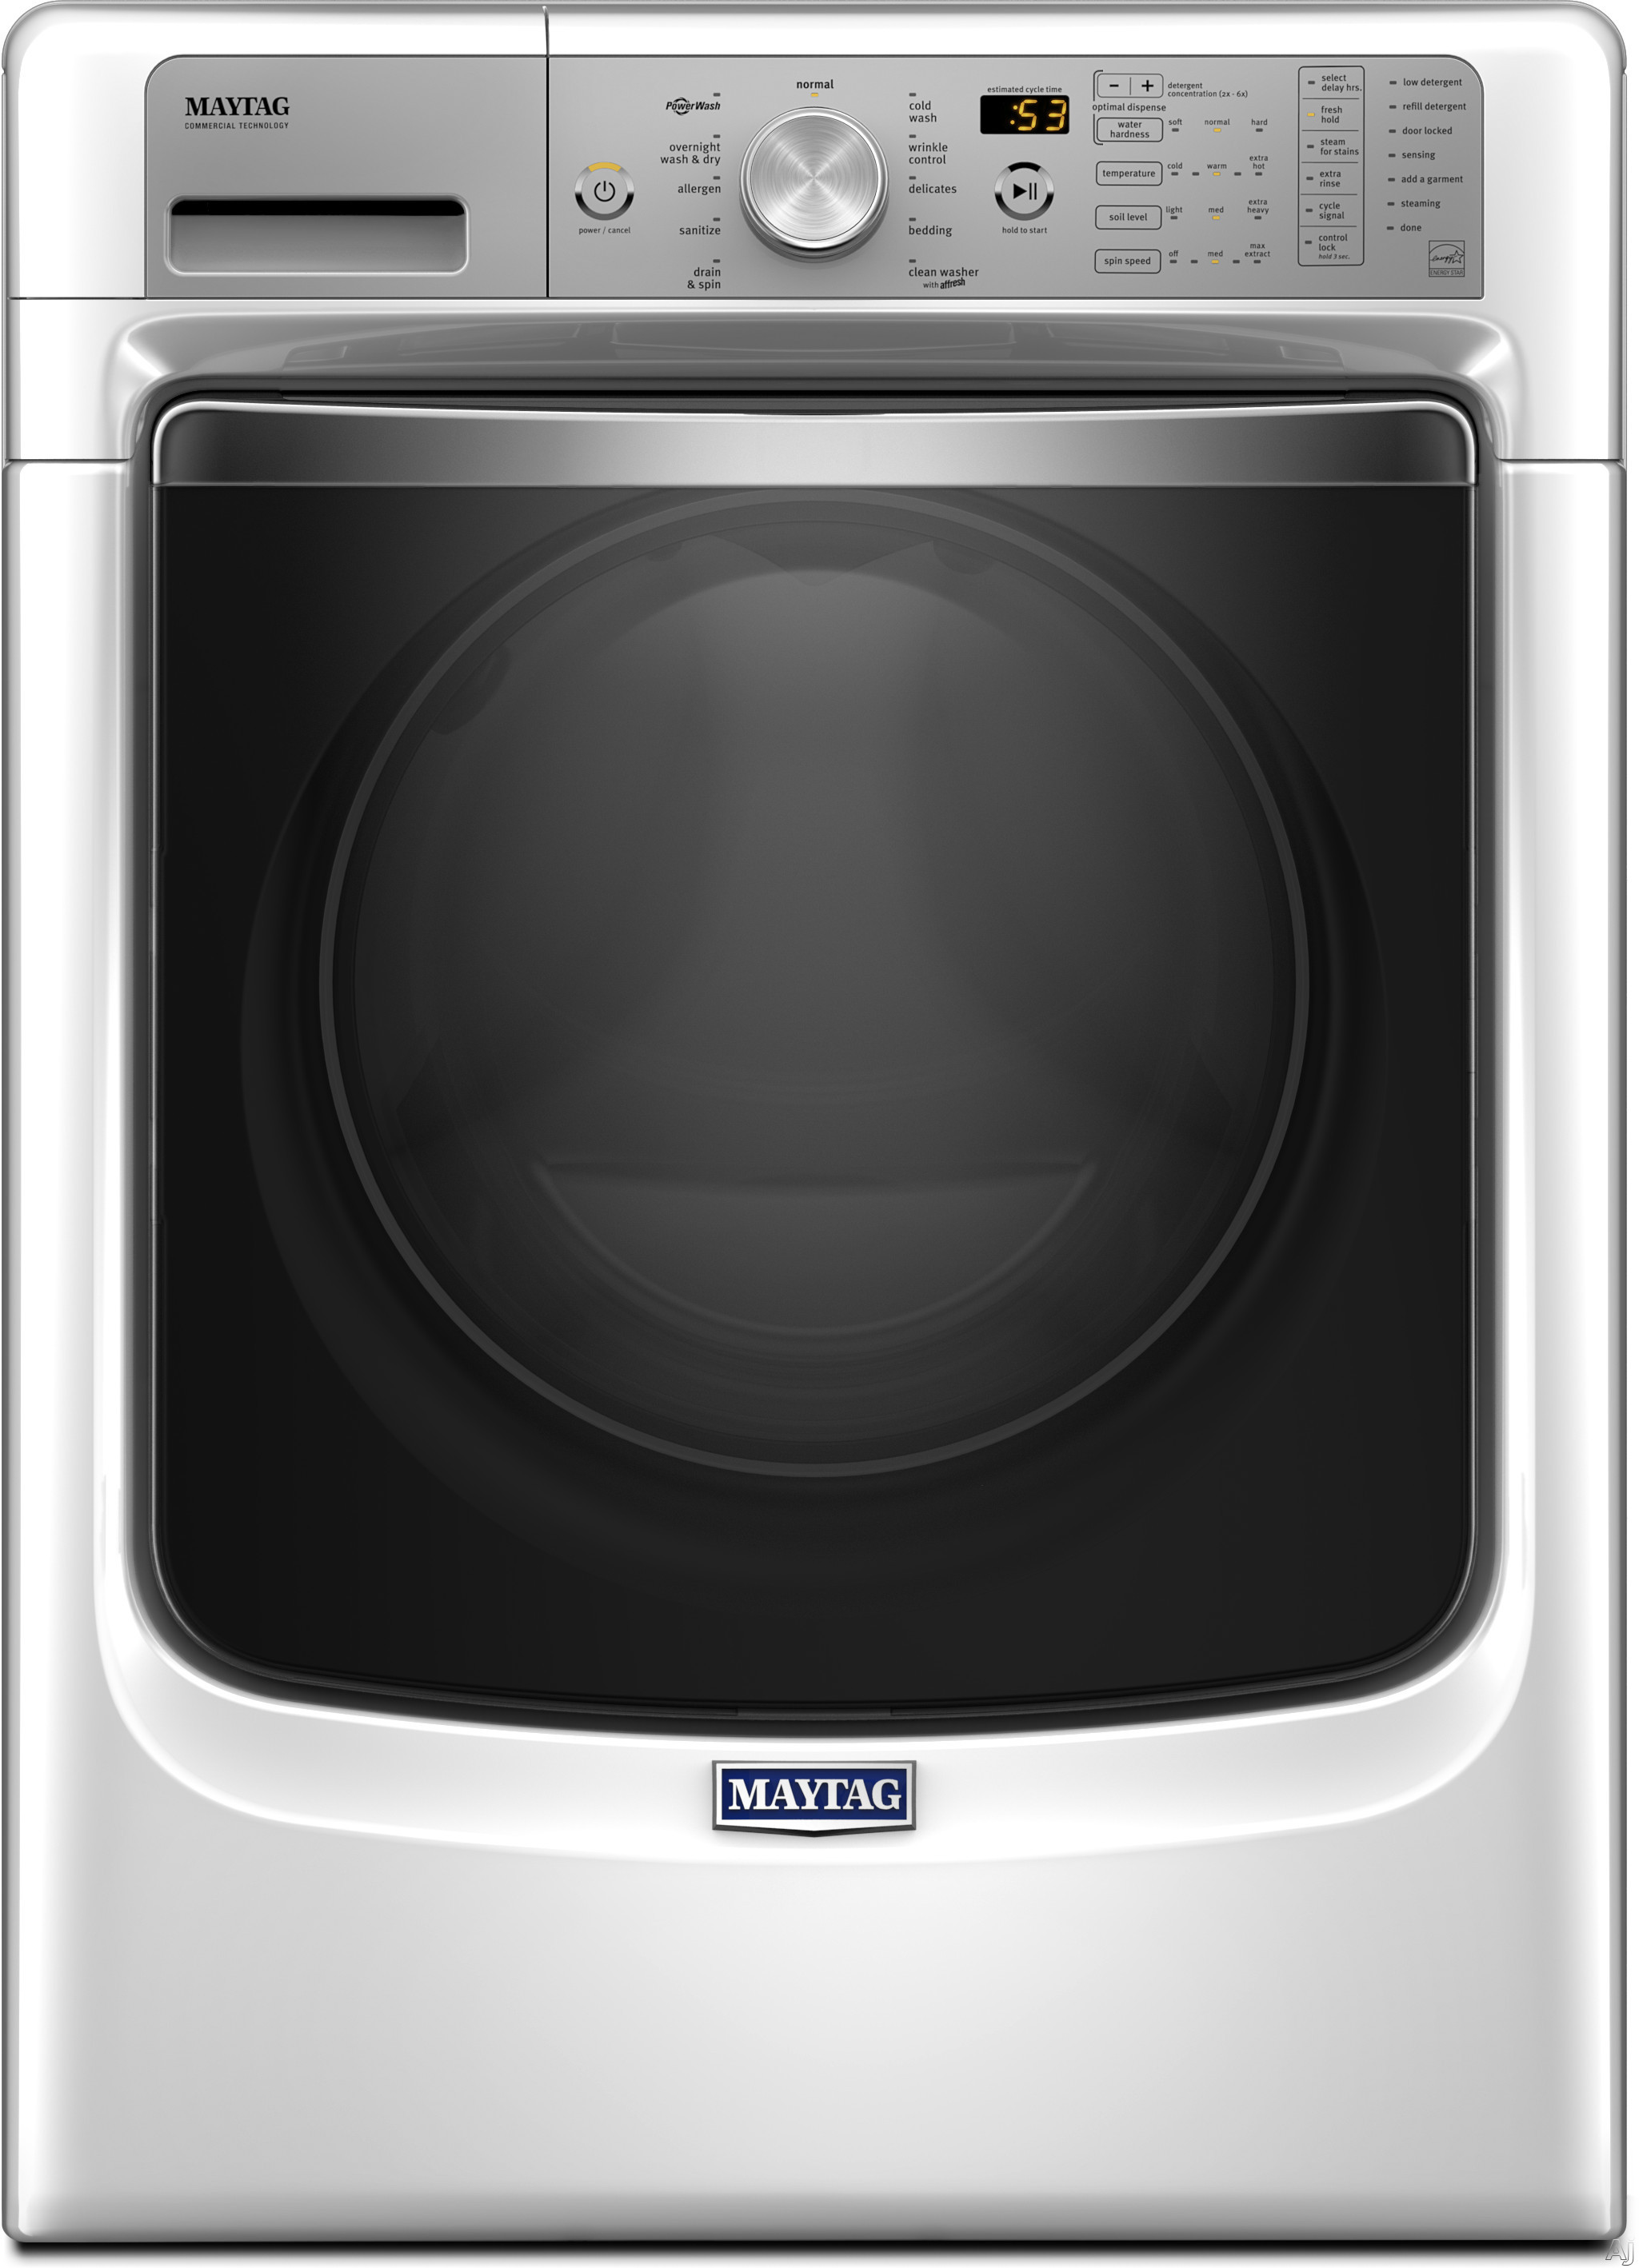 Maytag MHW8200FW 27 Inch 4.6 cu. ft. Front Load Washer with Steam, PowerWash® System, Fresh Hold® Option, Optimal Dose Dispenser, 11 Wash Cycles, 1,200 RPM, Overnight Wash & Dry Cycle and ENERGY